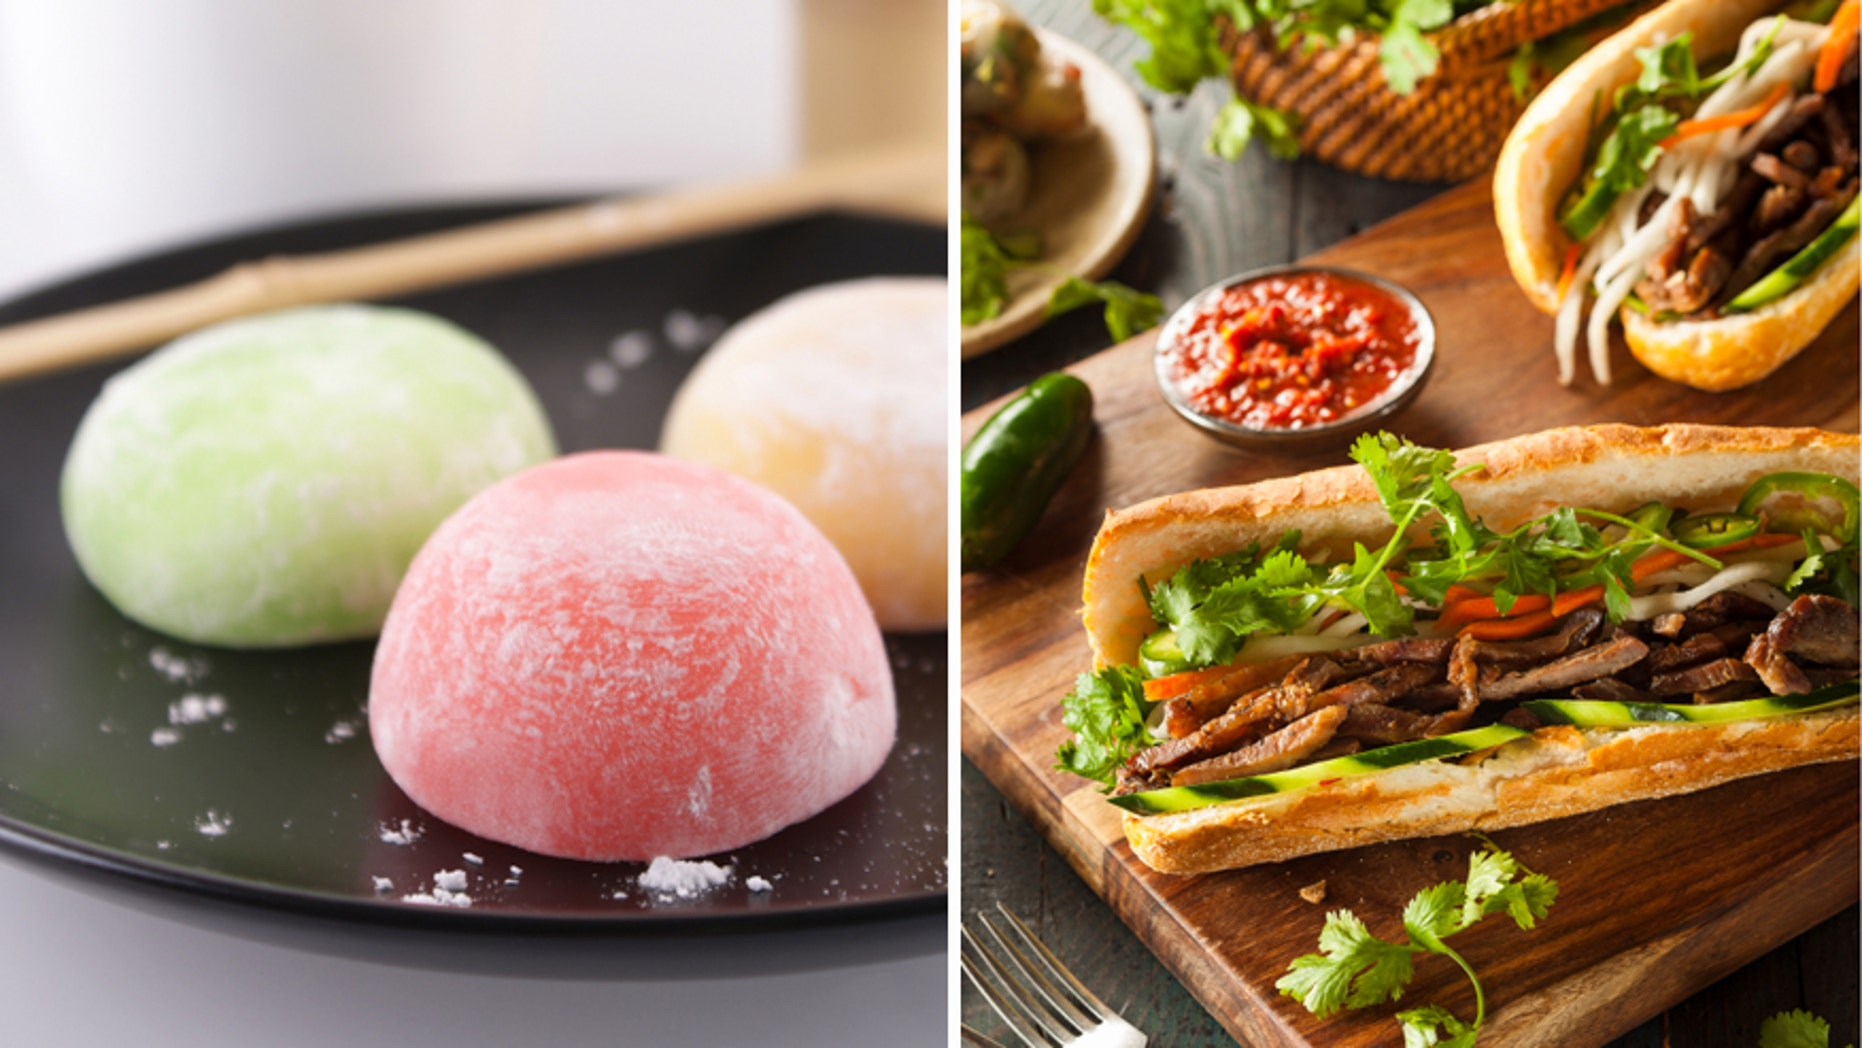 Have you tried mochi (L) or bahn mi (R)?